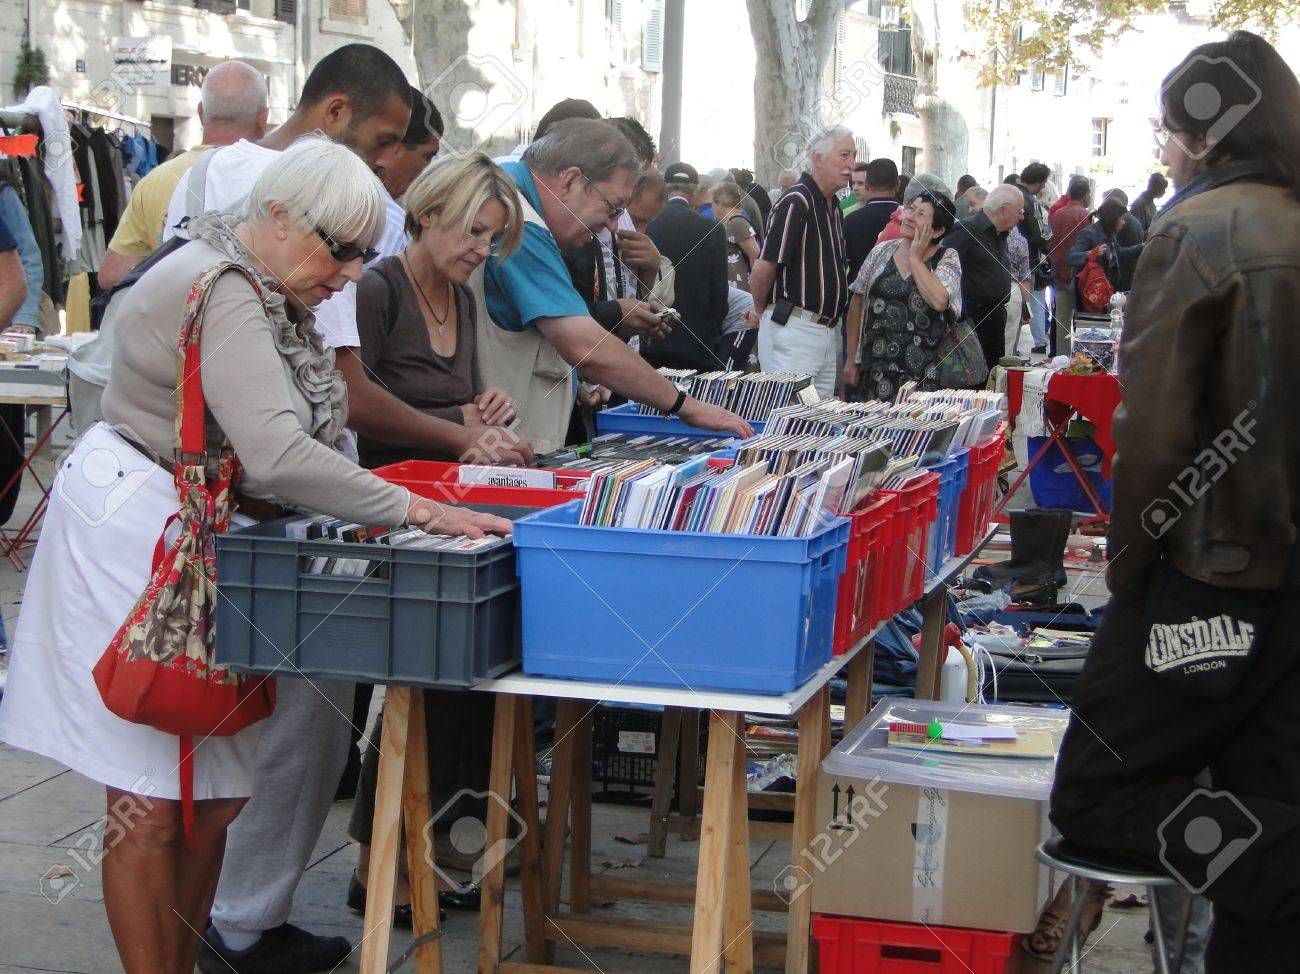 AVIGNON, FRANCE - OCT 2:Shoppers search for bargains at a weekly flea market on Oct 2, 2011, in Avignon, France. - 11501848